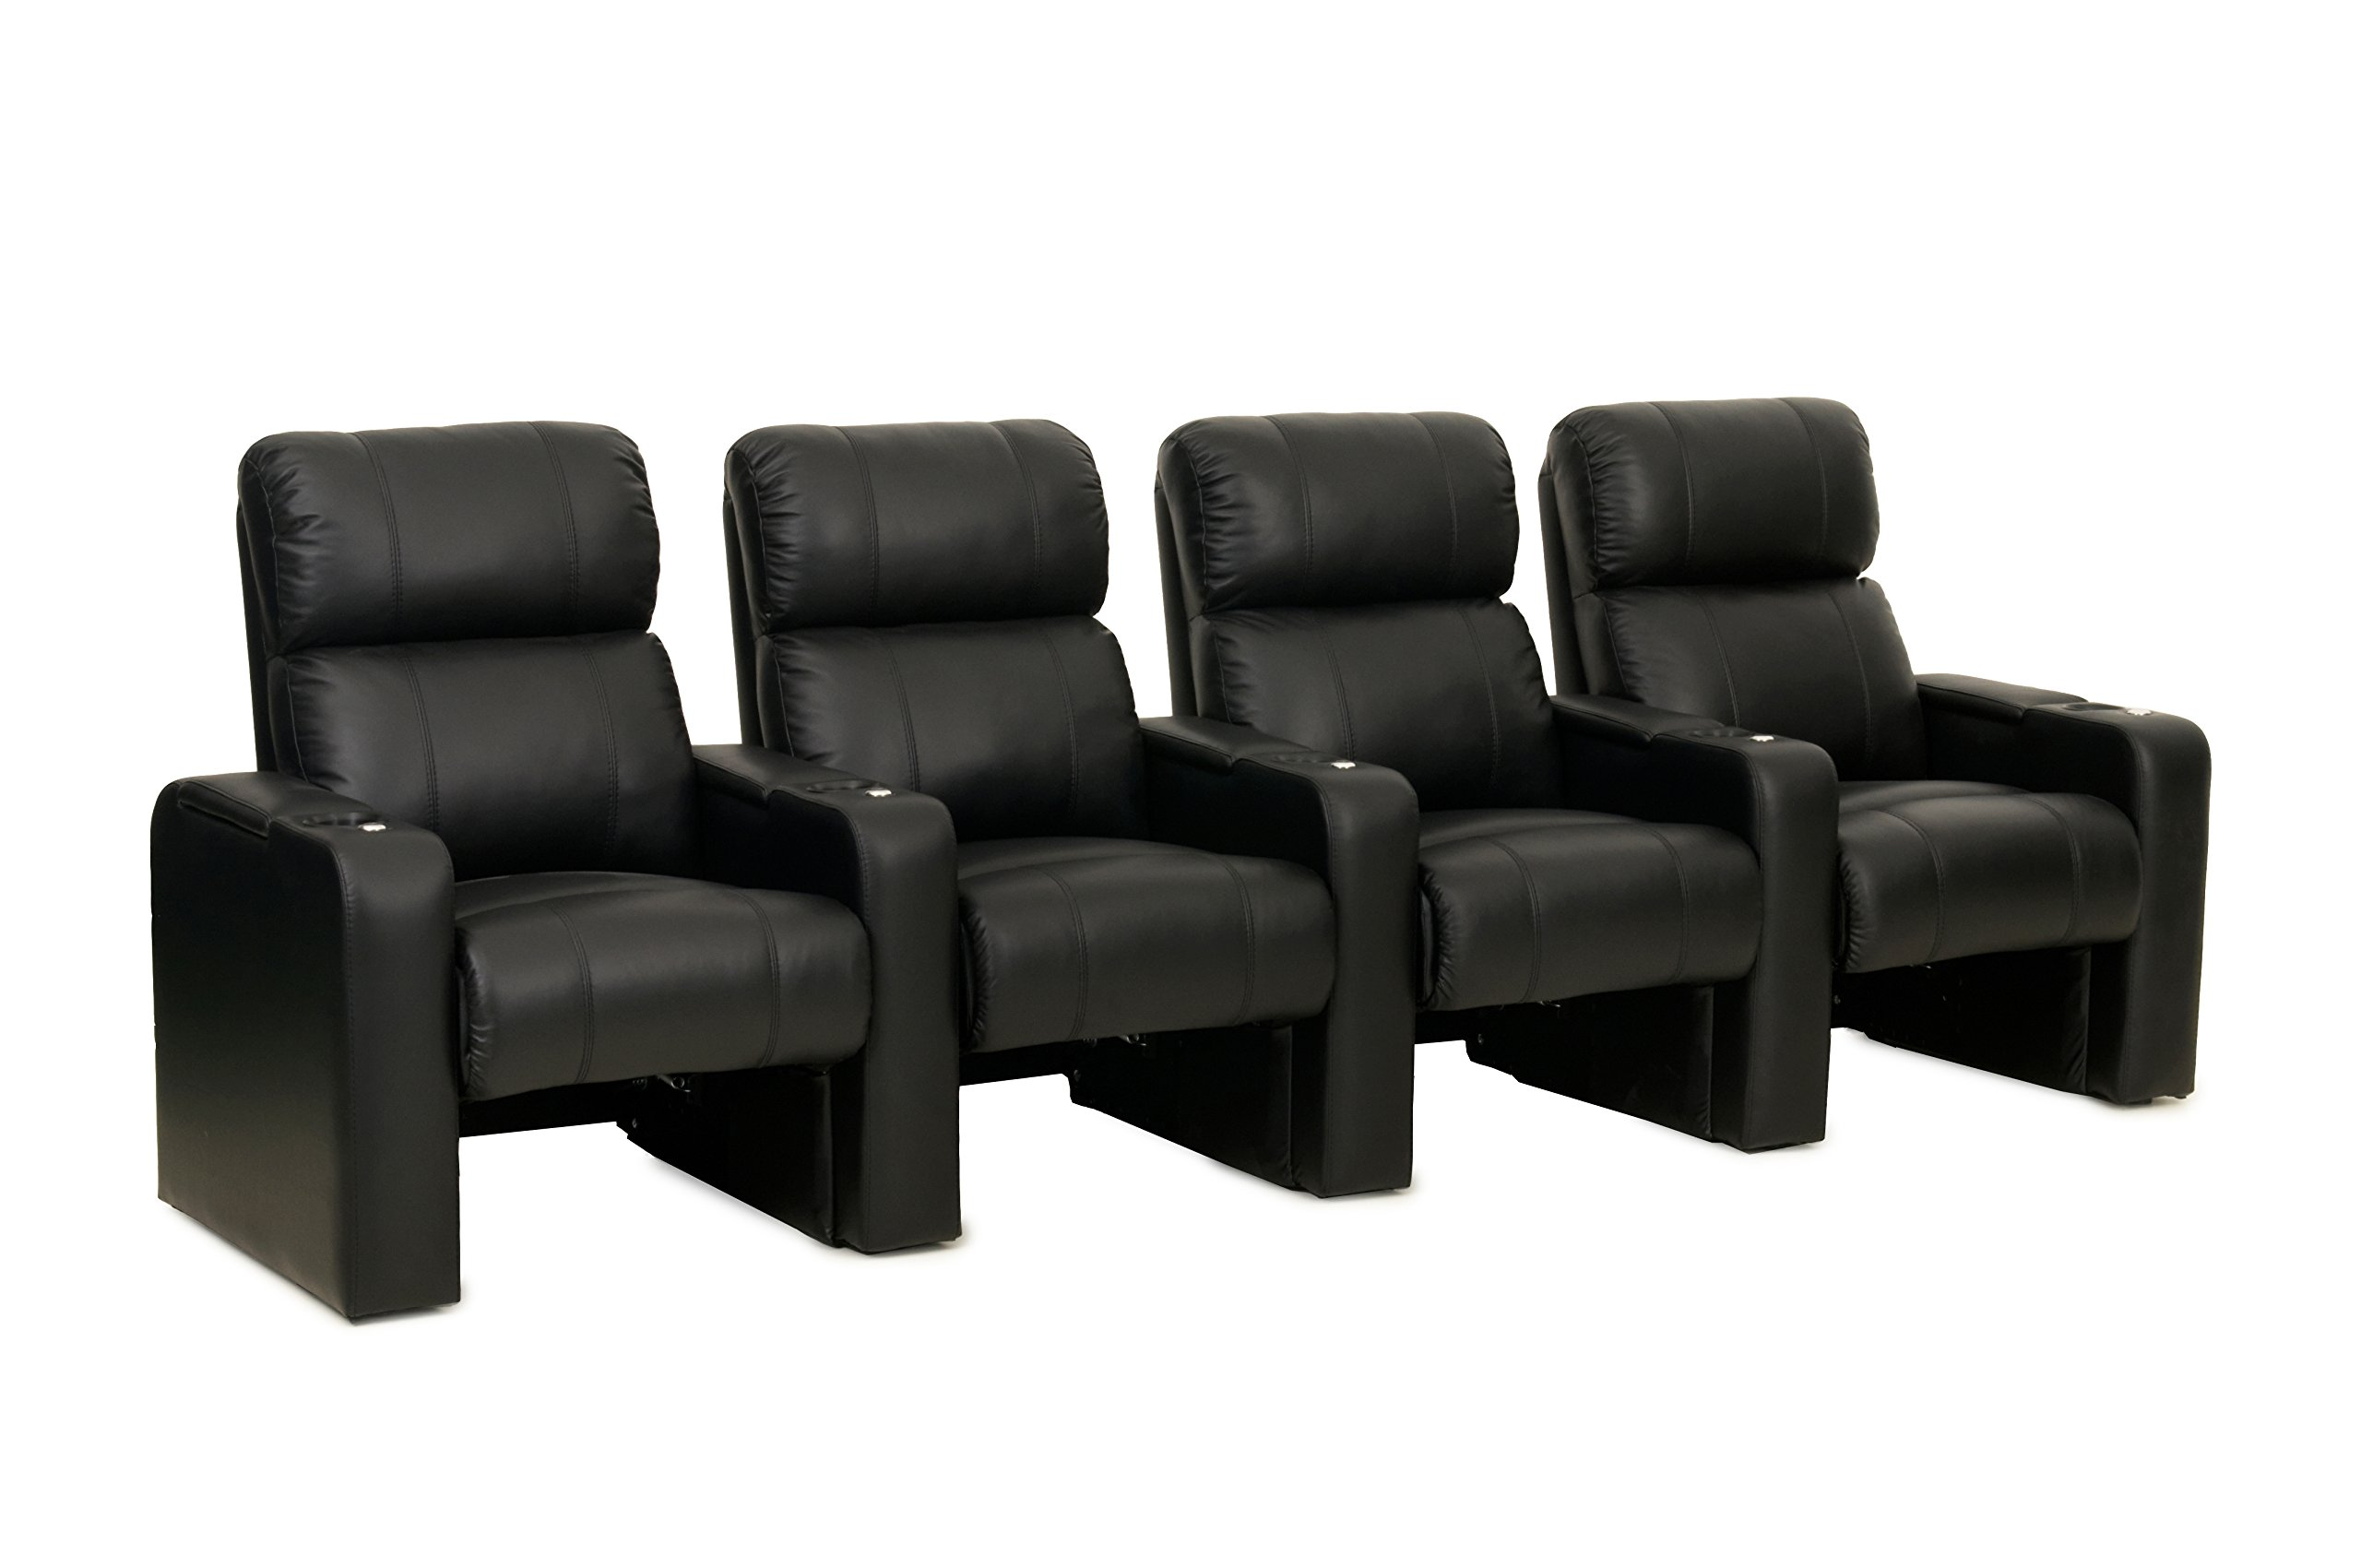 Jet ZR600 Home Theatre Rocker - Octane Seating - Bonded Leather - Accessory Dock - Straight Row of 4 Movie Chairs